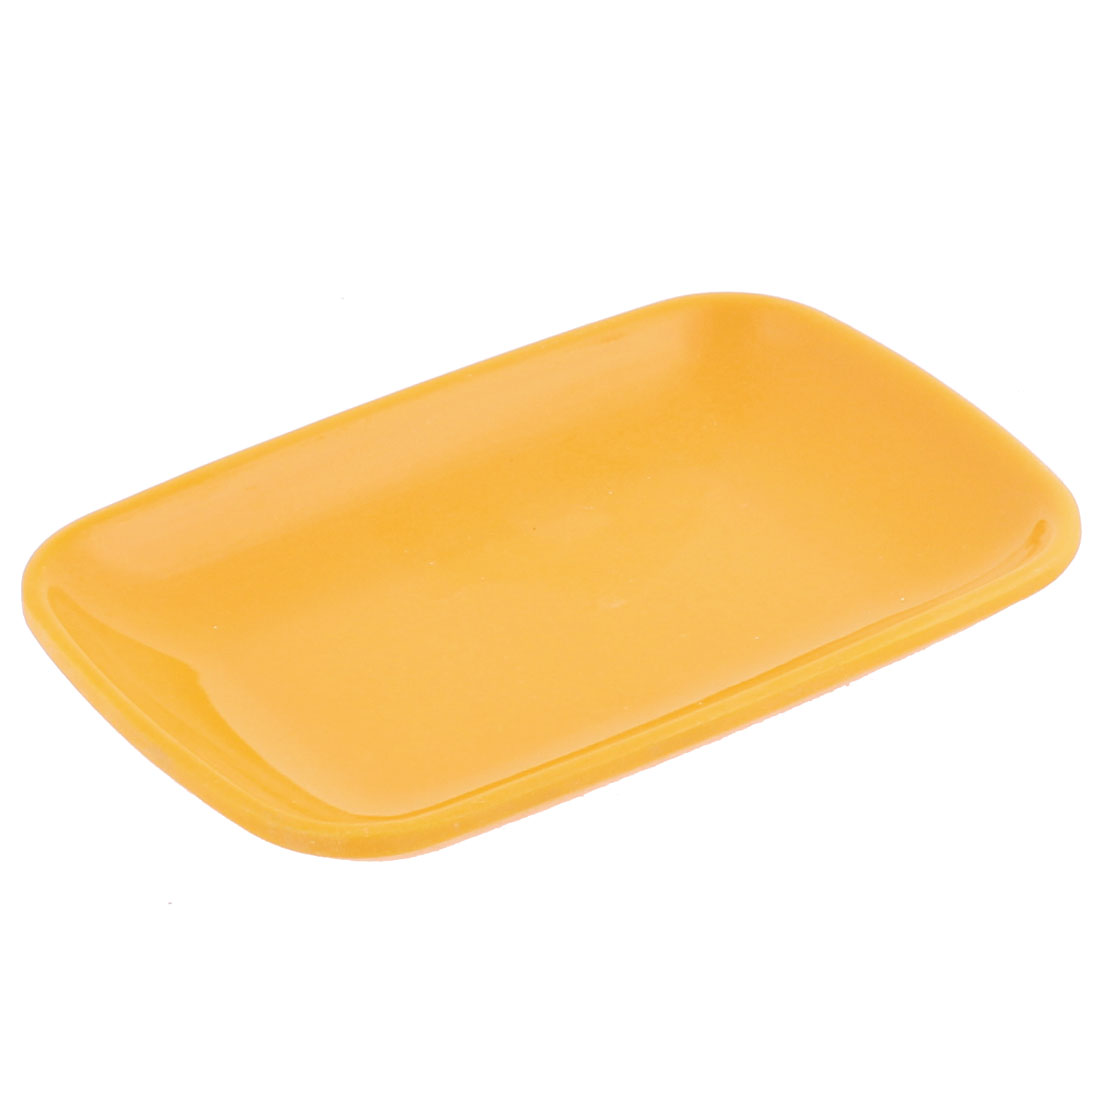 Plastic Rectangle Shape Dessert Cake Appetizer Plate Yellow